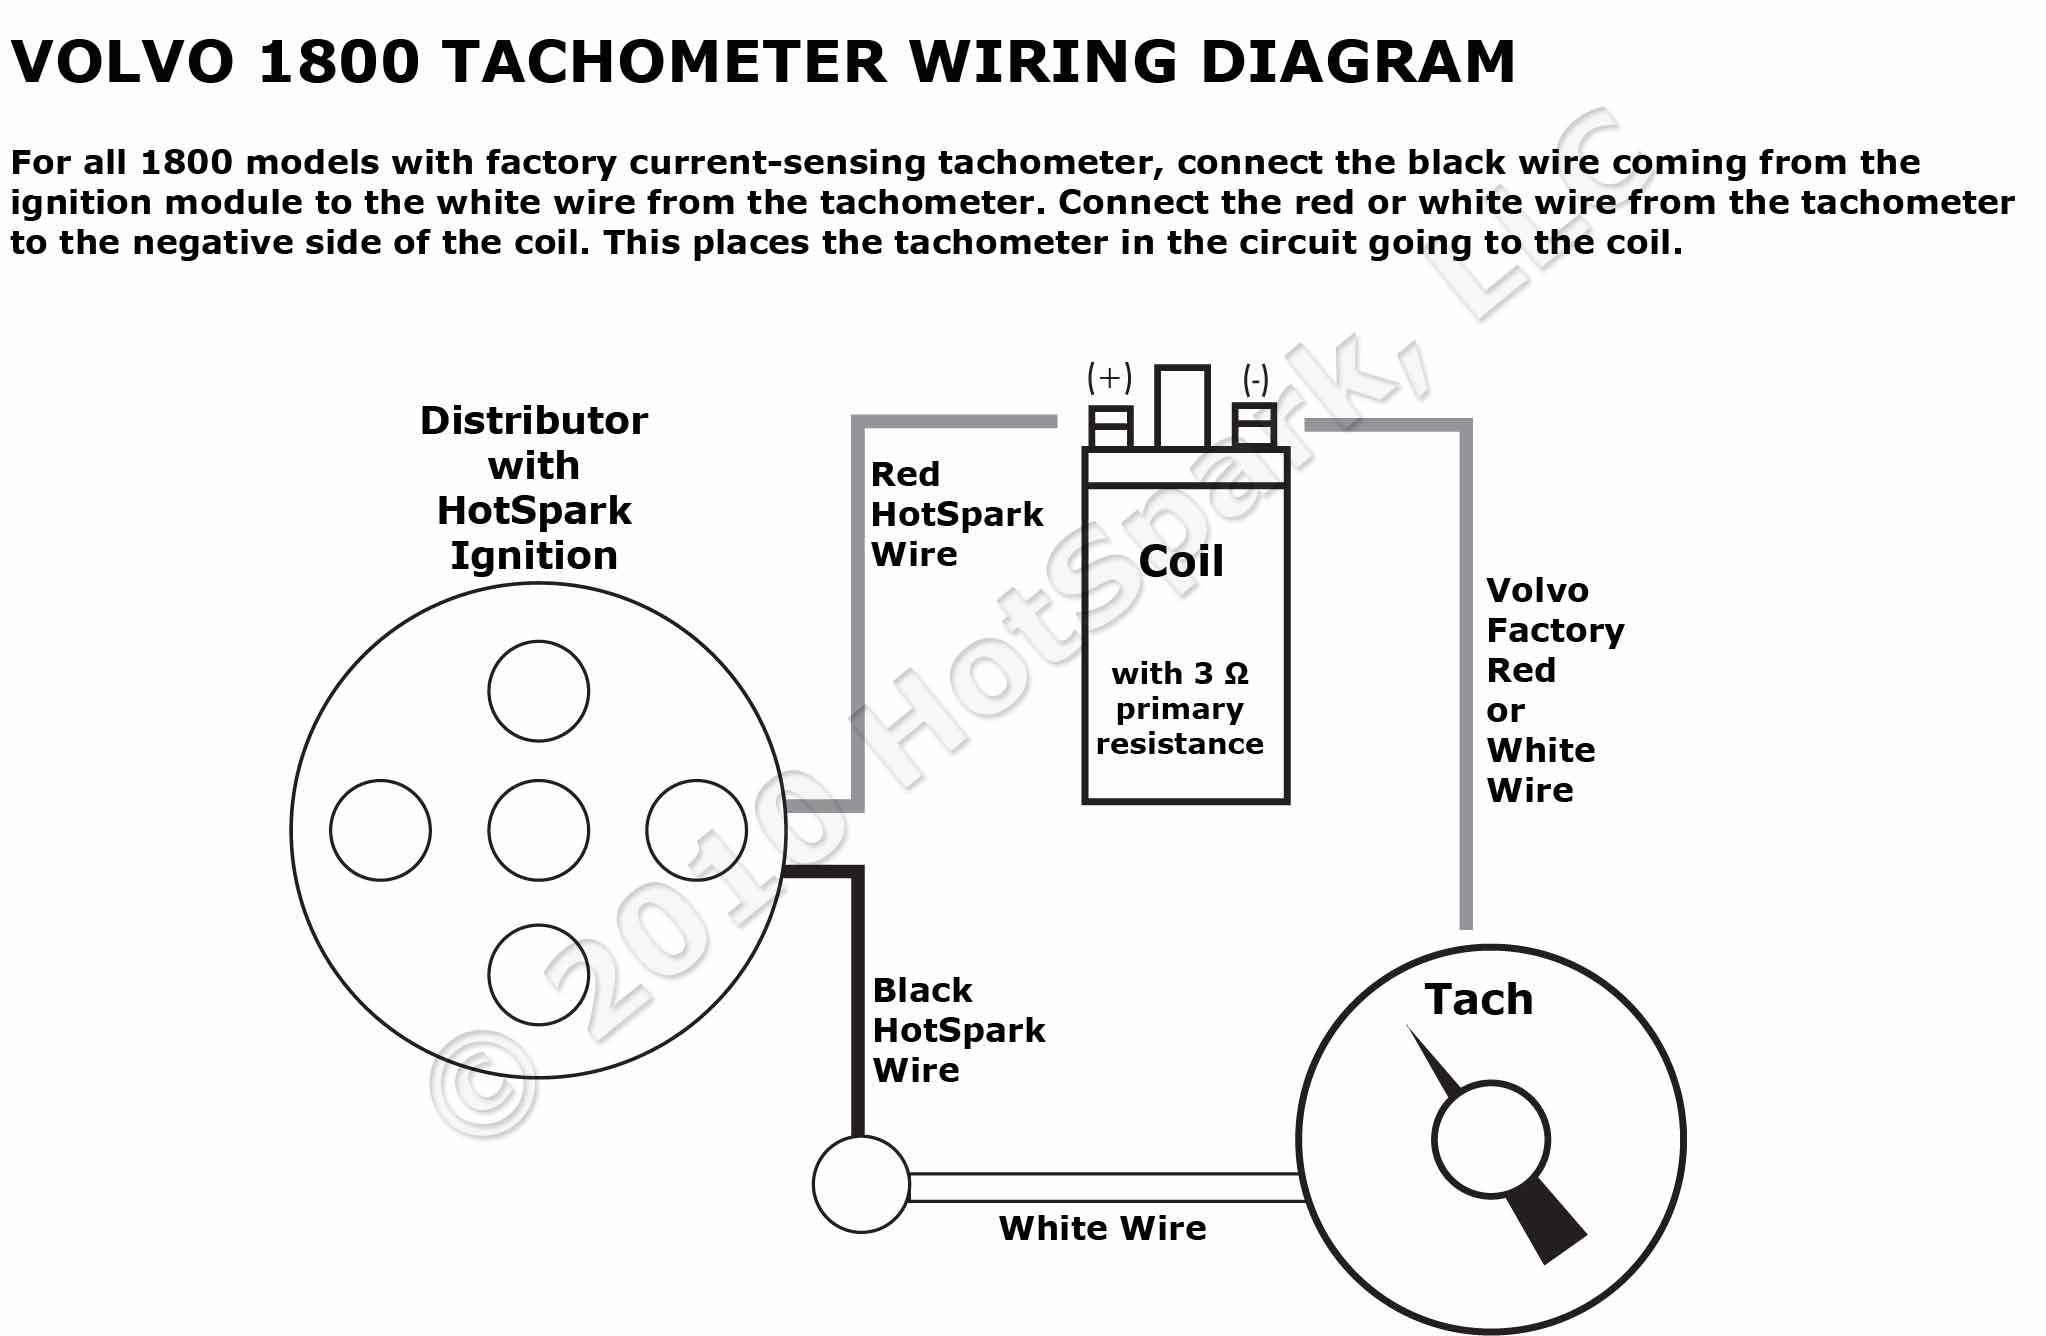 WRG-1635] Harley Davidson Motorcycle Tachometer Wiring Diagram on